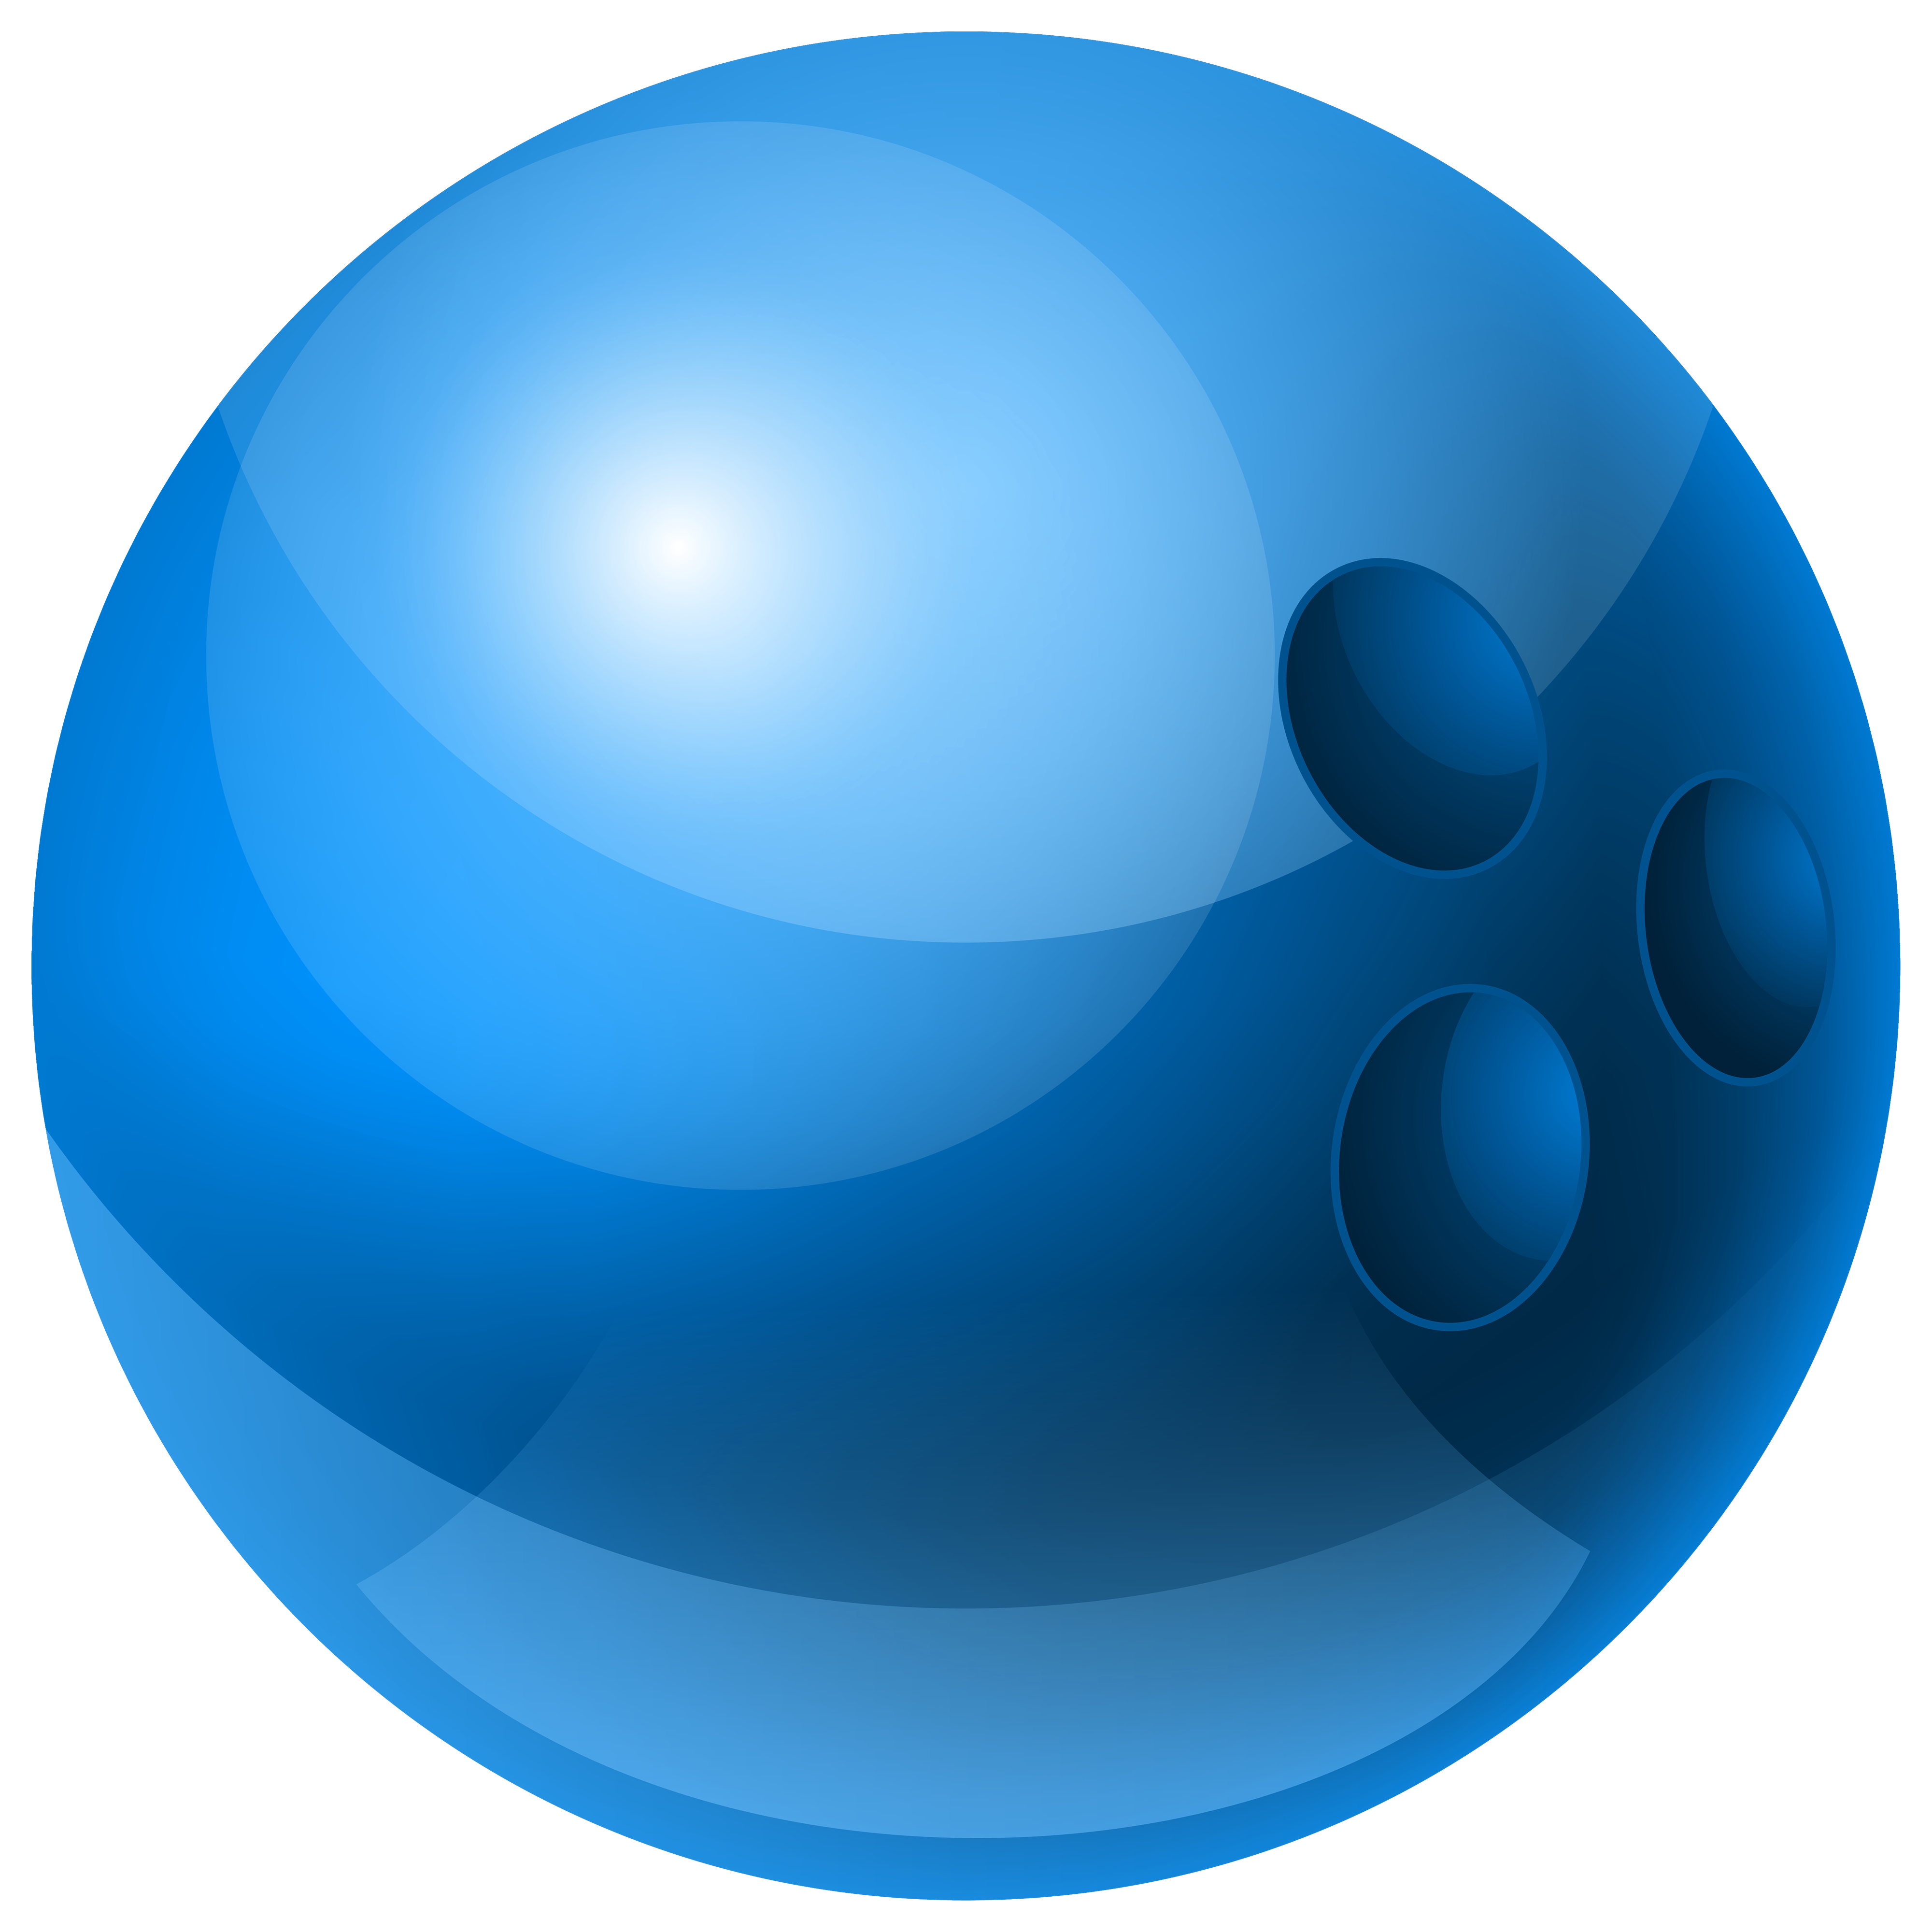 Blue Bowling Ball PNG Clipart.